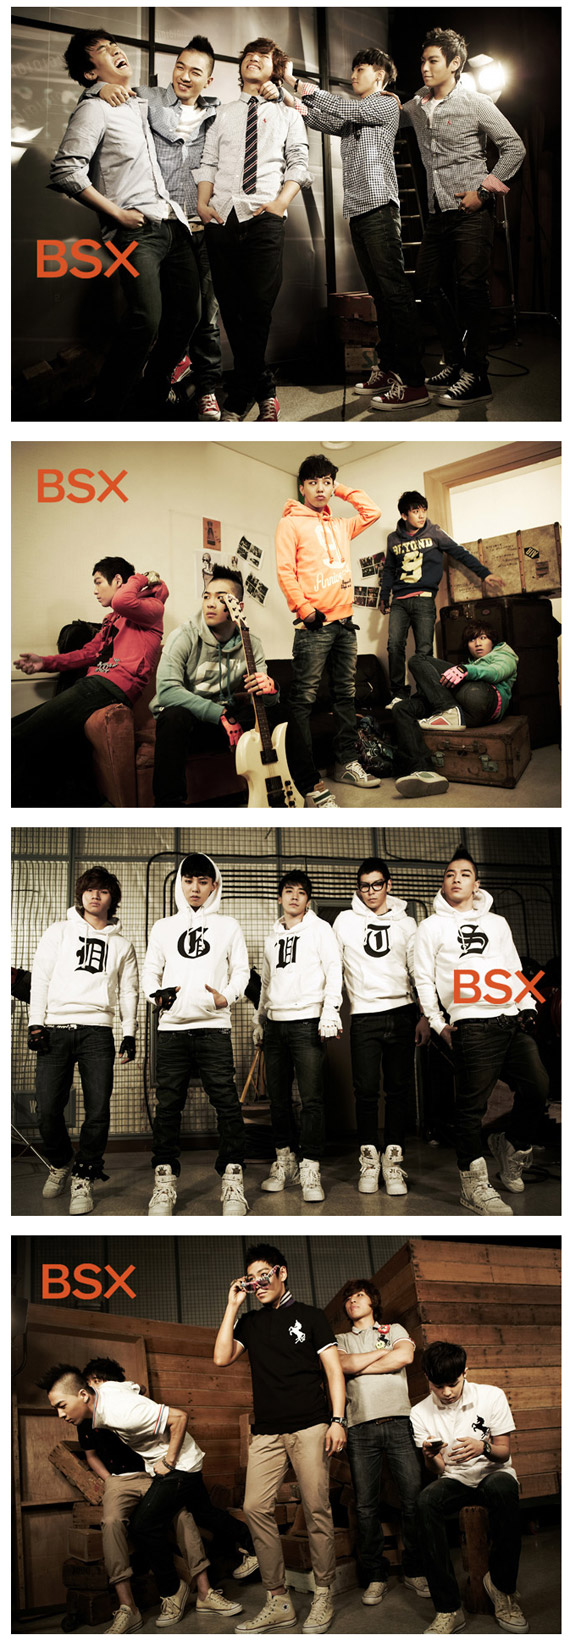 bsx logo 